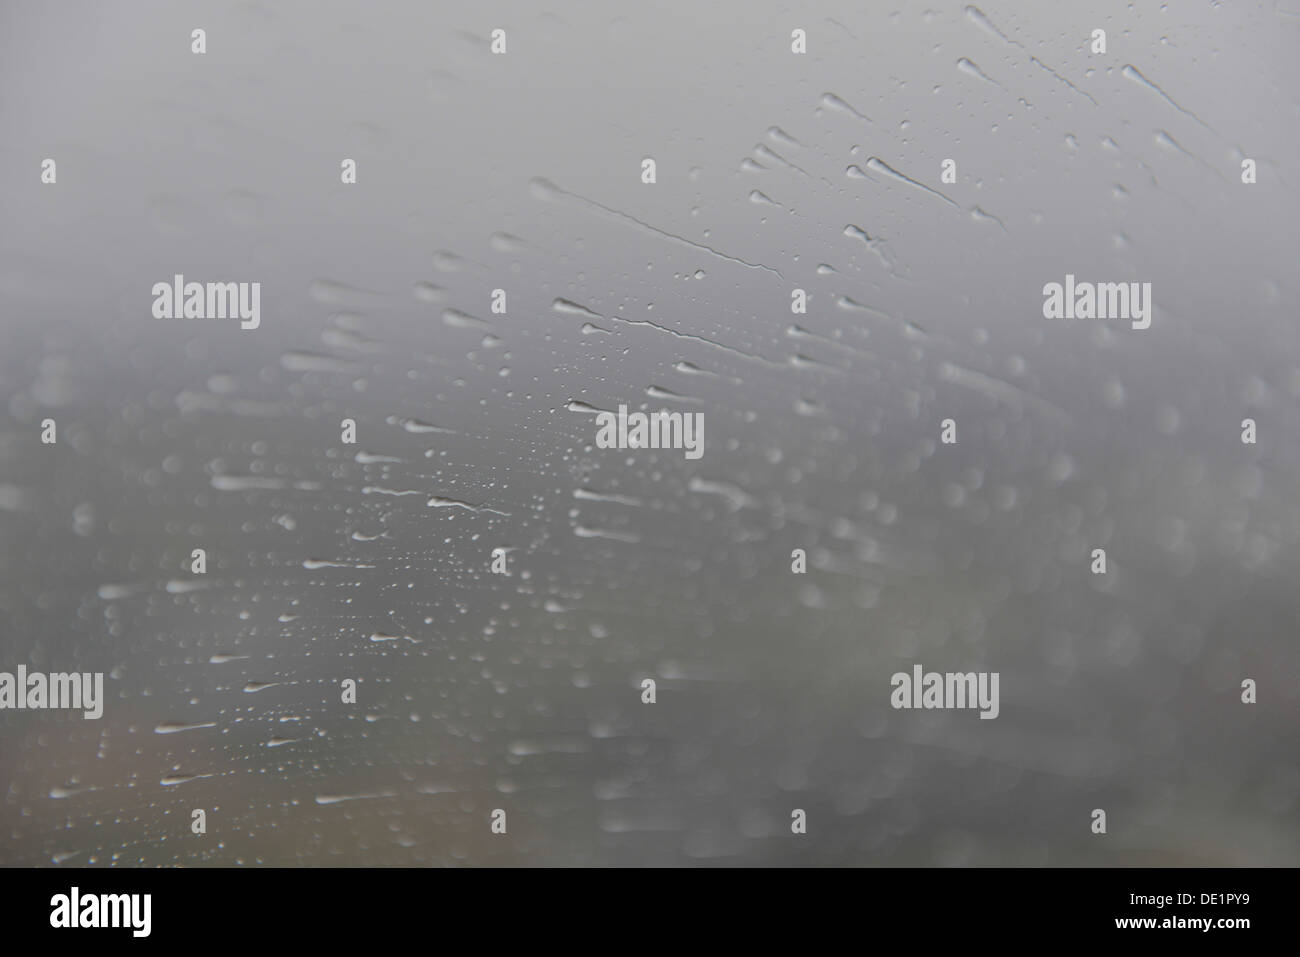 A photograph of rain streaming across a helicopter window - Stock Image